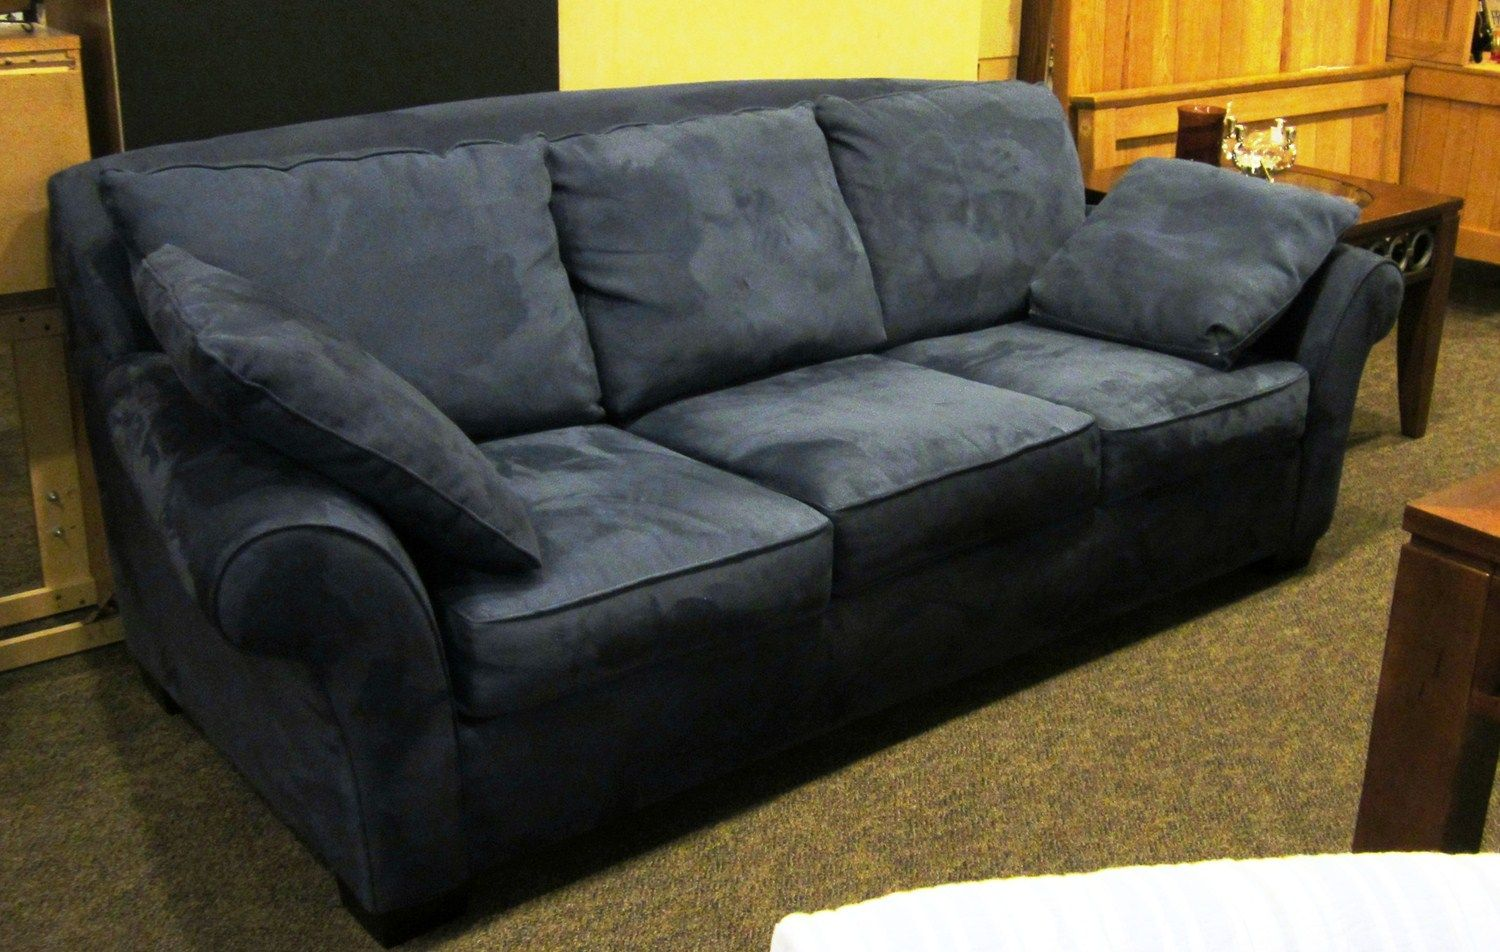 Blue Microsuede Sofa Very Comfortable Sofa In Great Condition